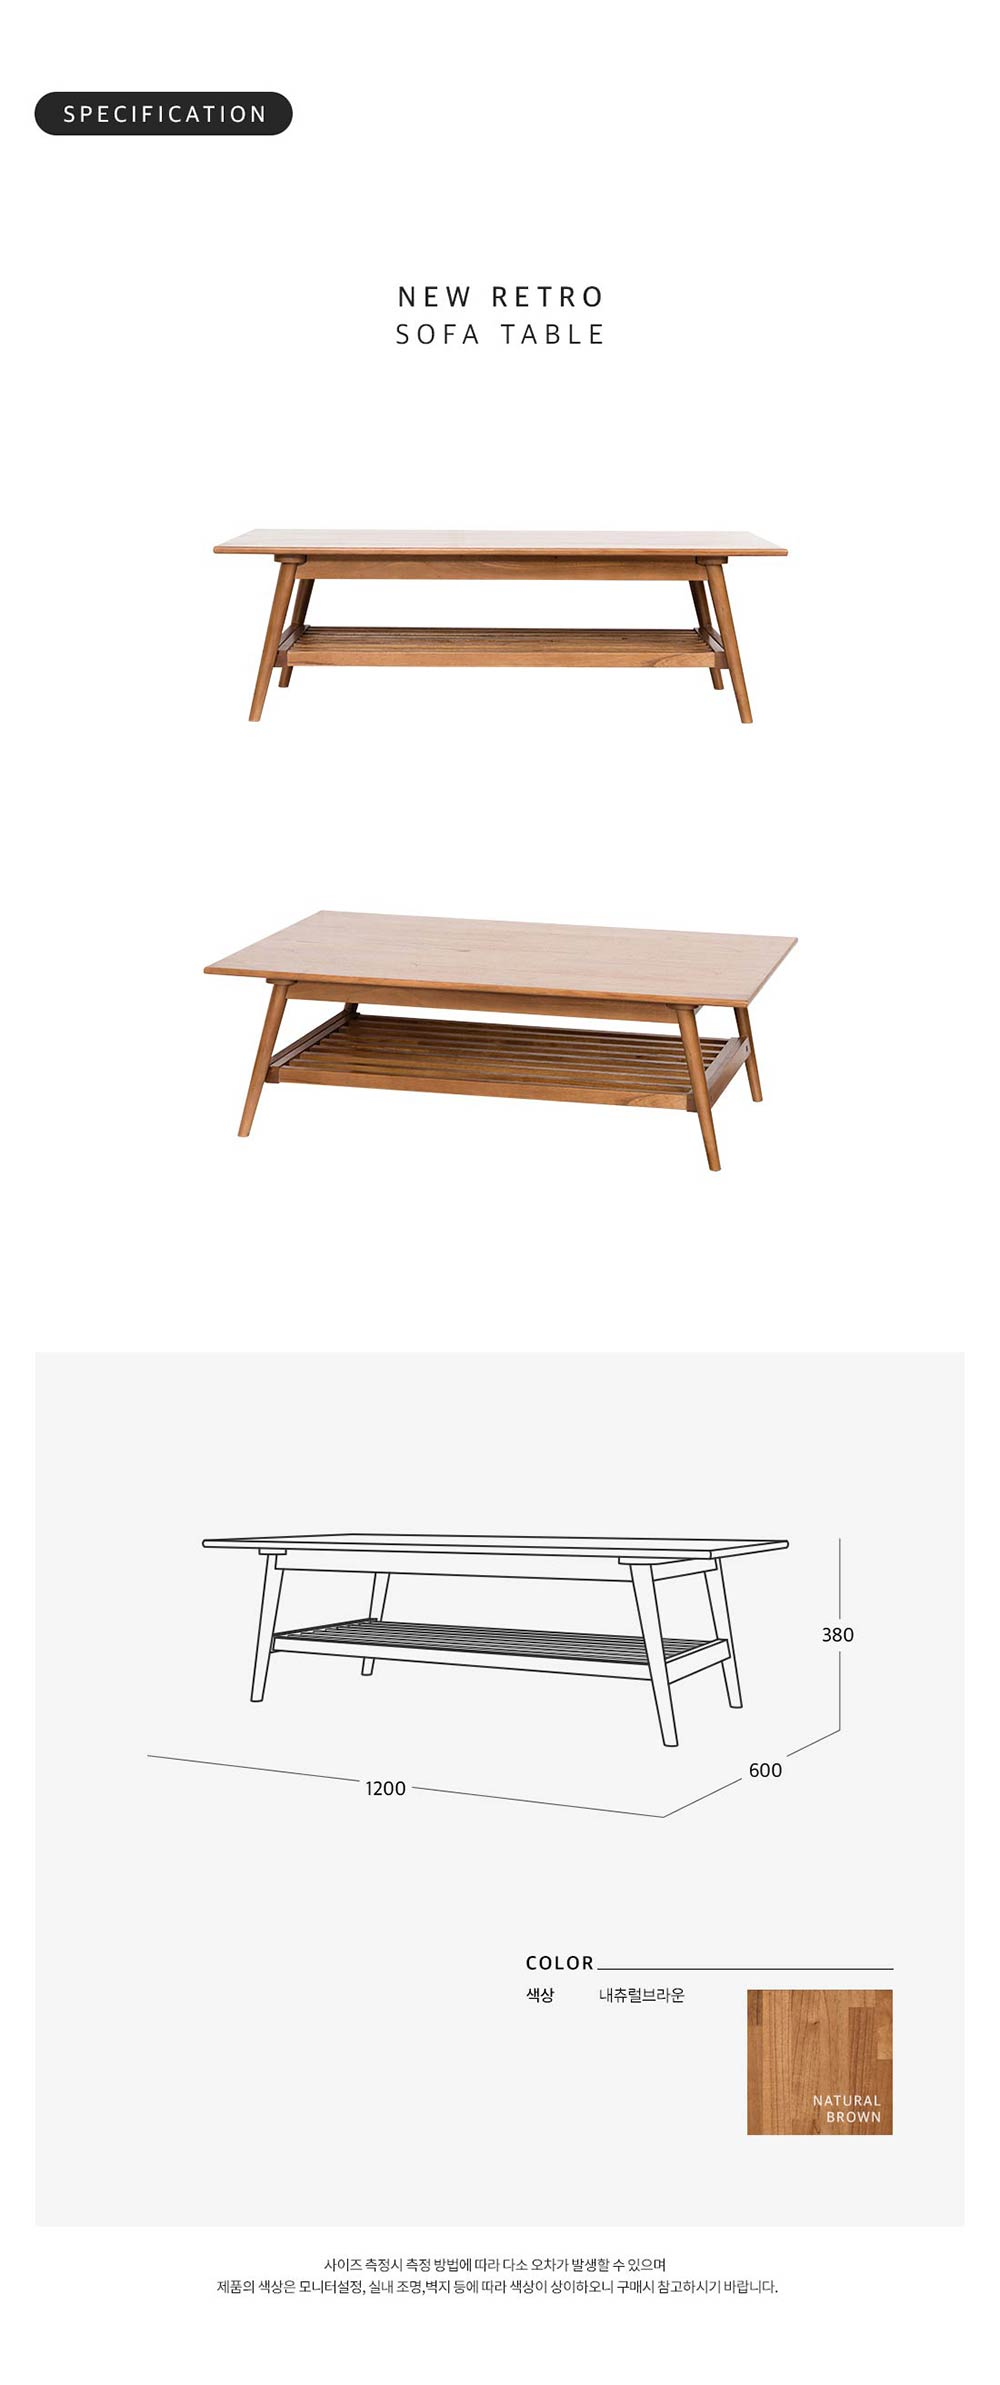 New Retro Sofa Table, Online, Furniture, Singapore, Specification